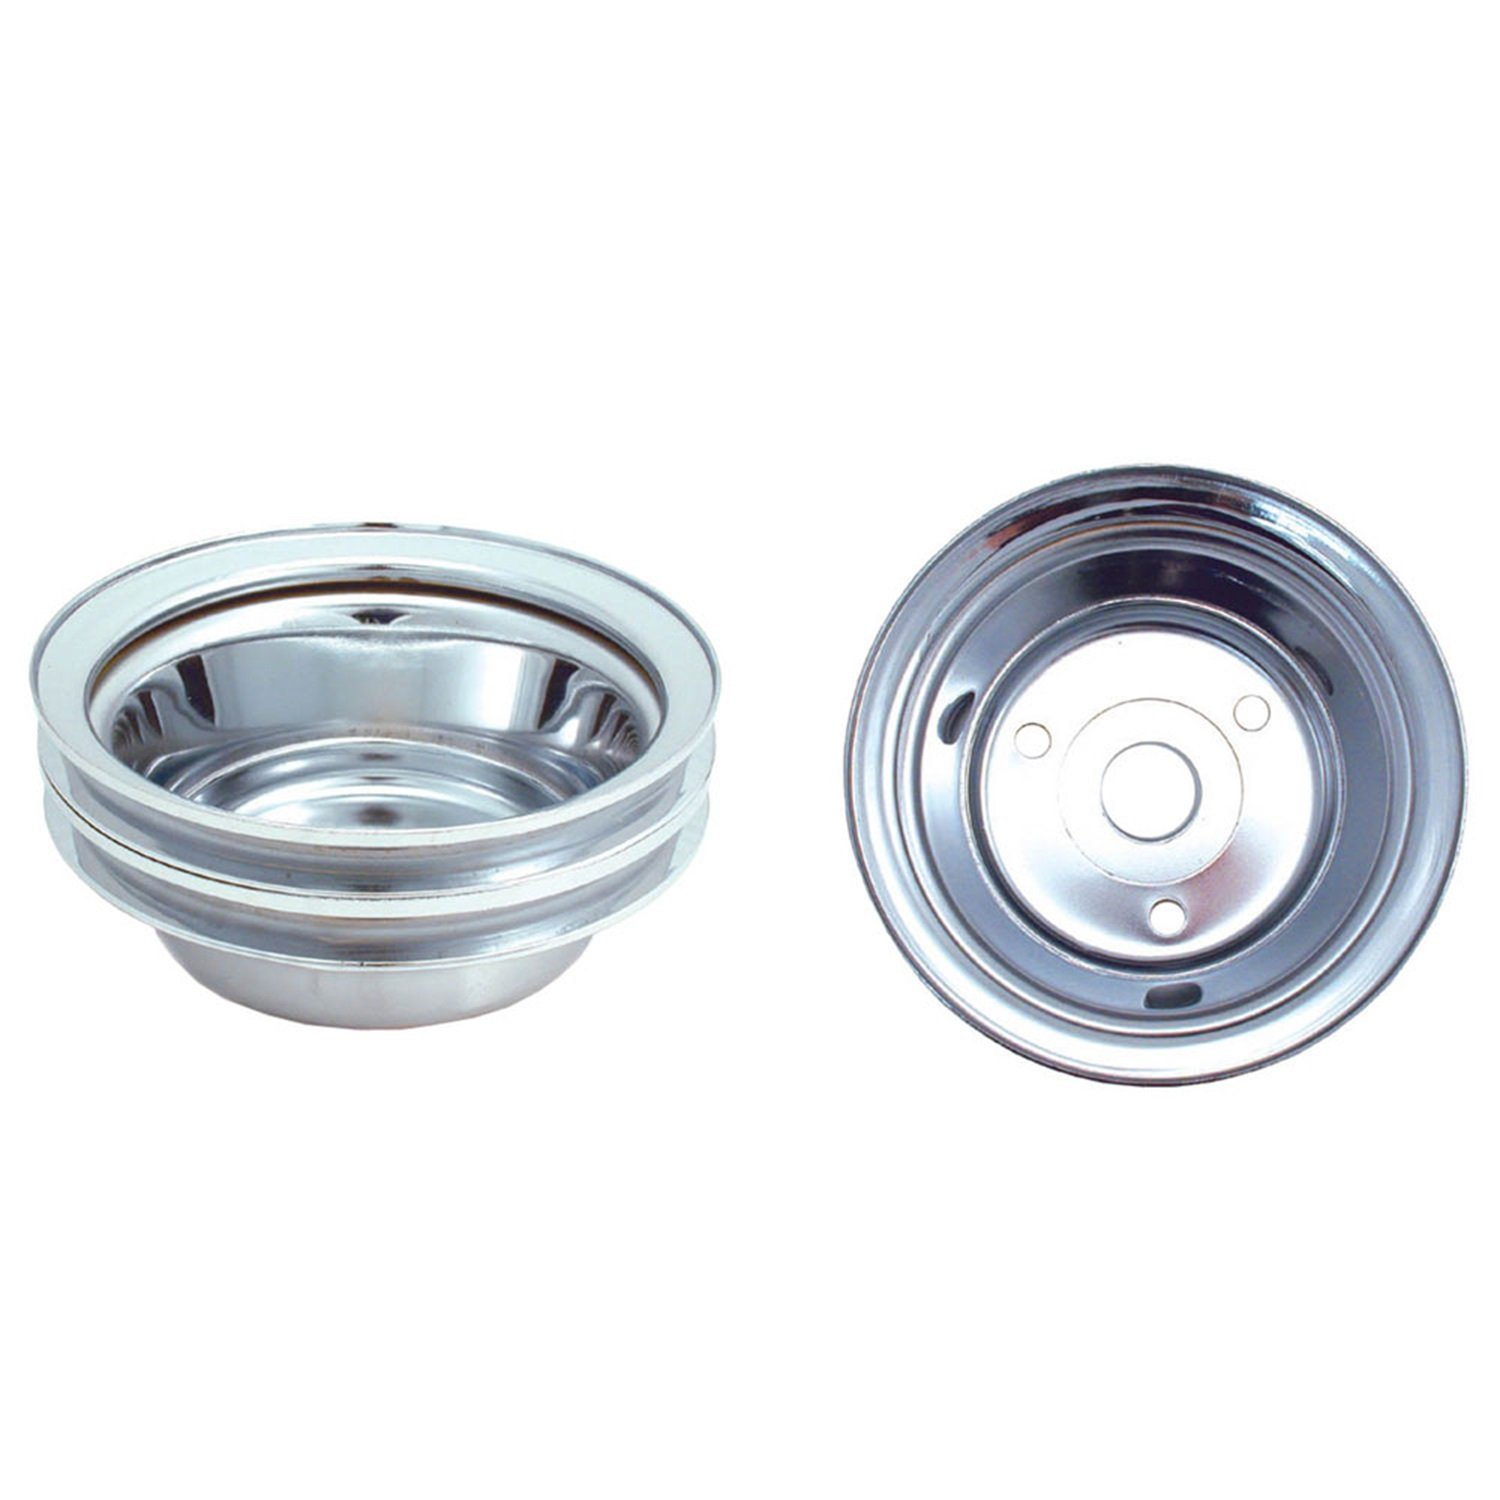 Spectre Performance 4438 Chrome Plated Crankshaft Pulley for Small Block Chevy